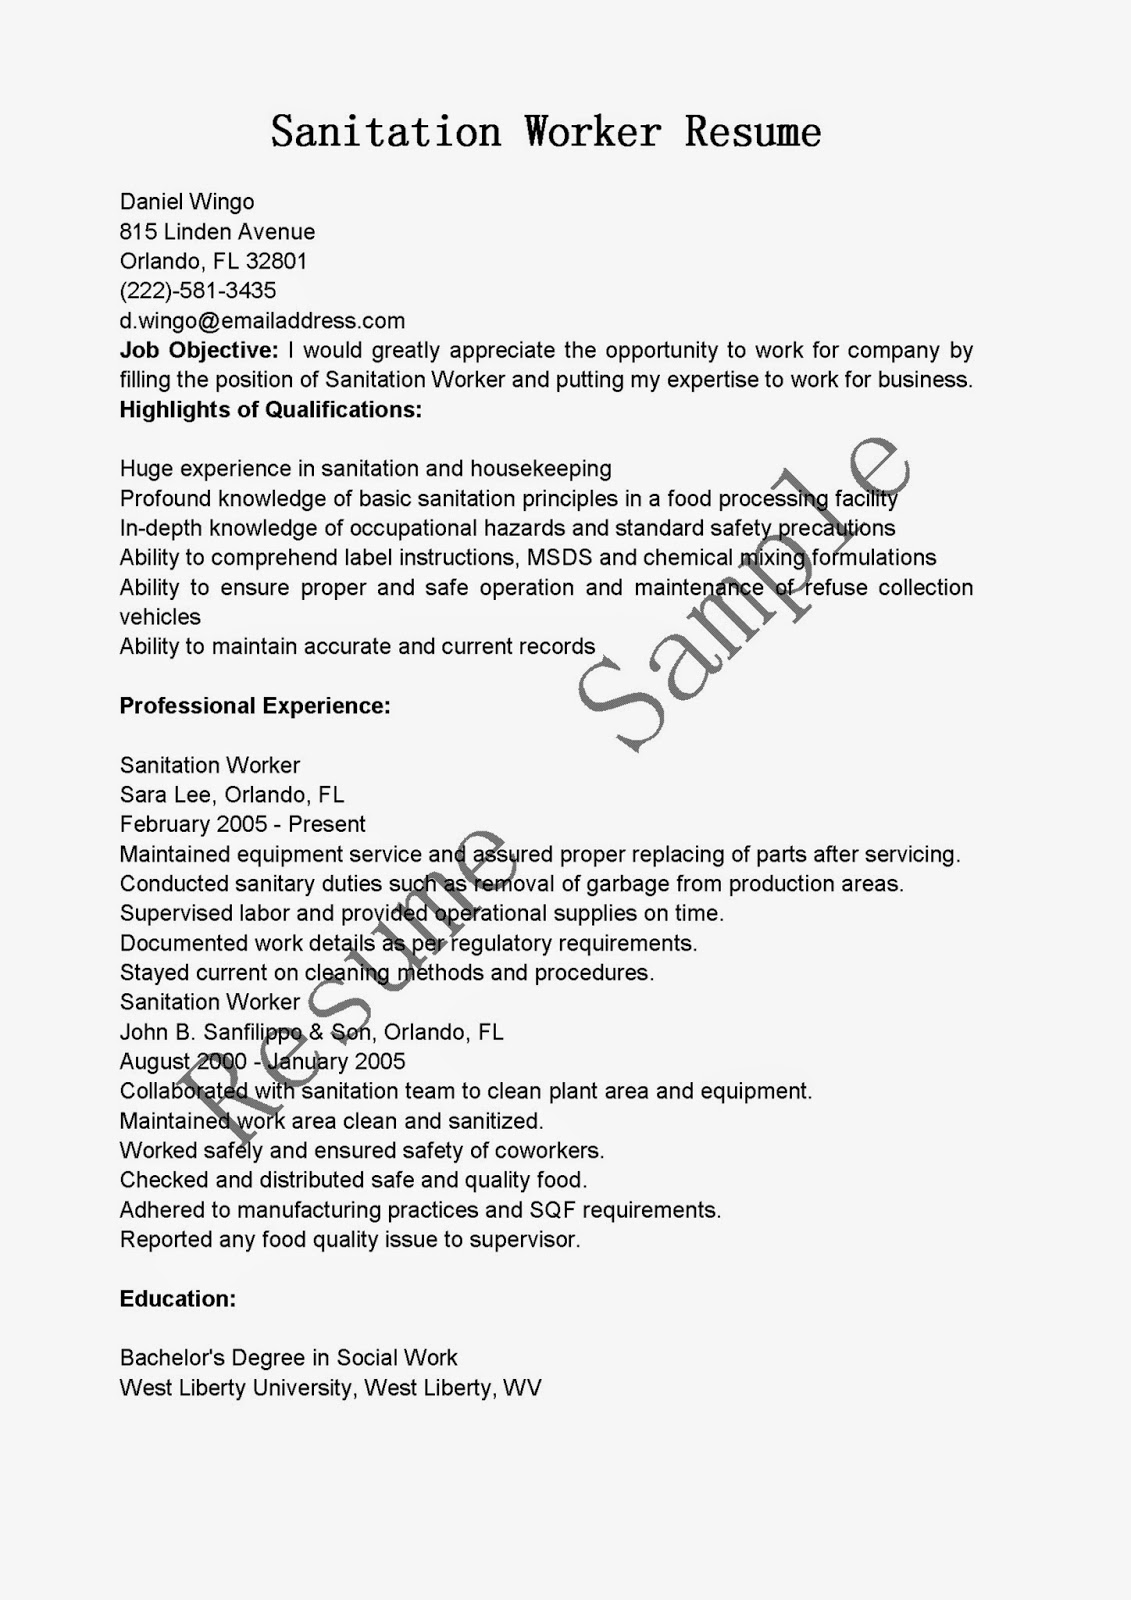 Sanitation Worker Resume Resume Samples Sanitation Worker Resume Sample